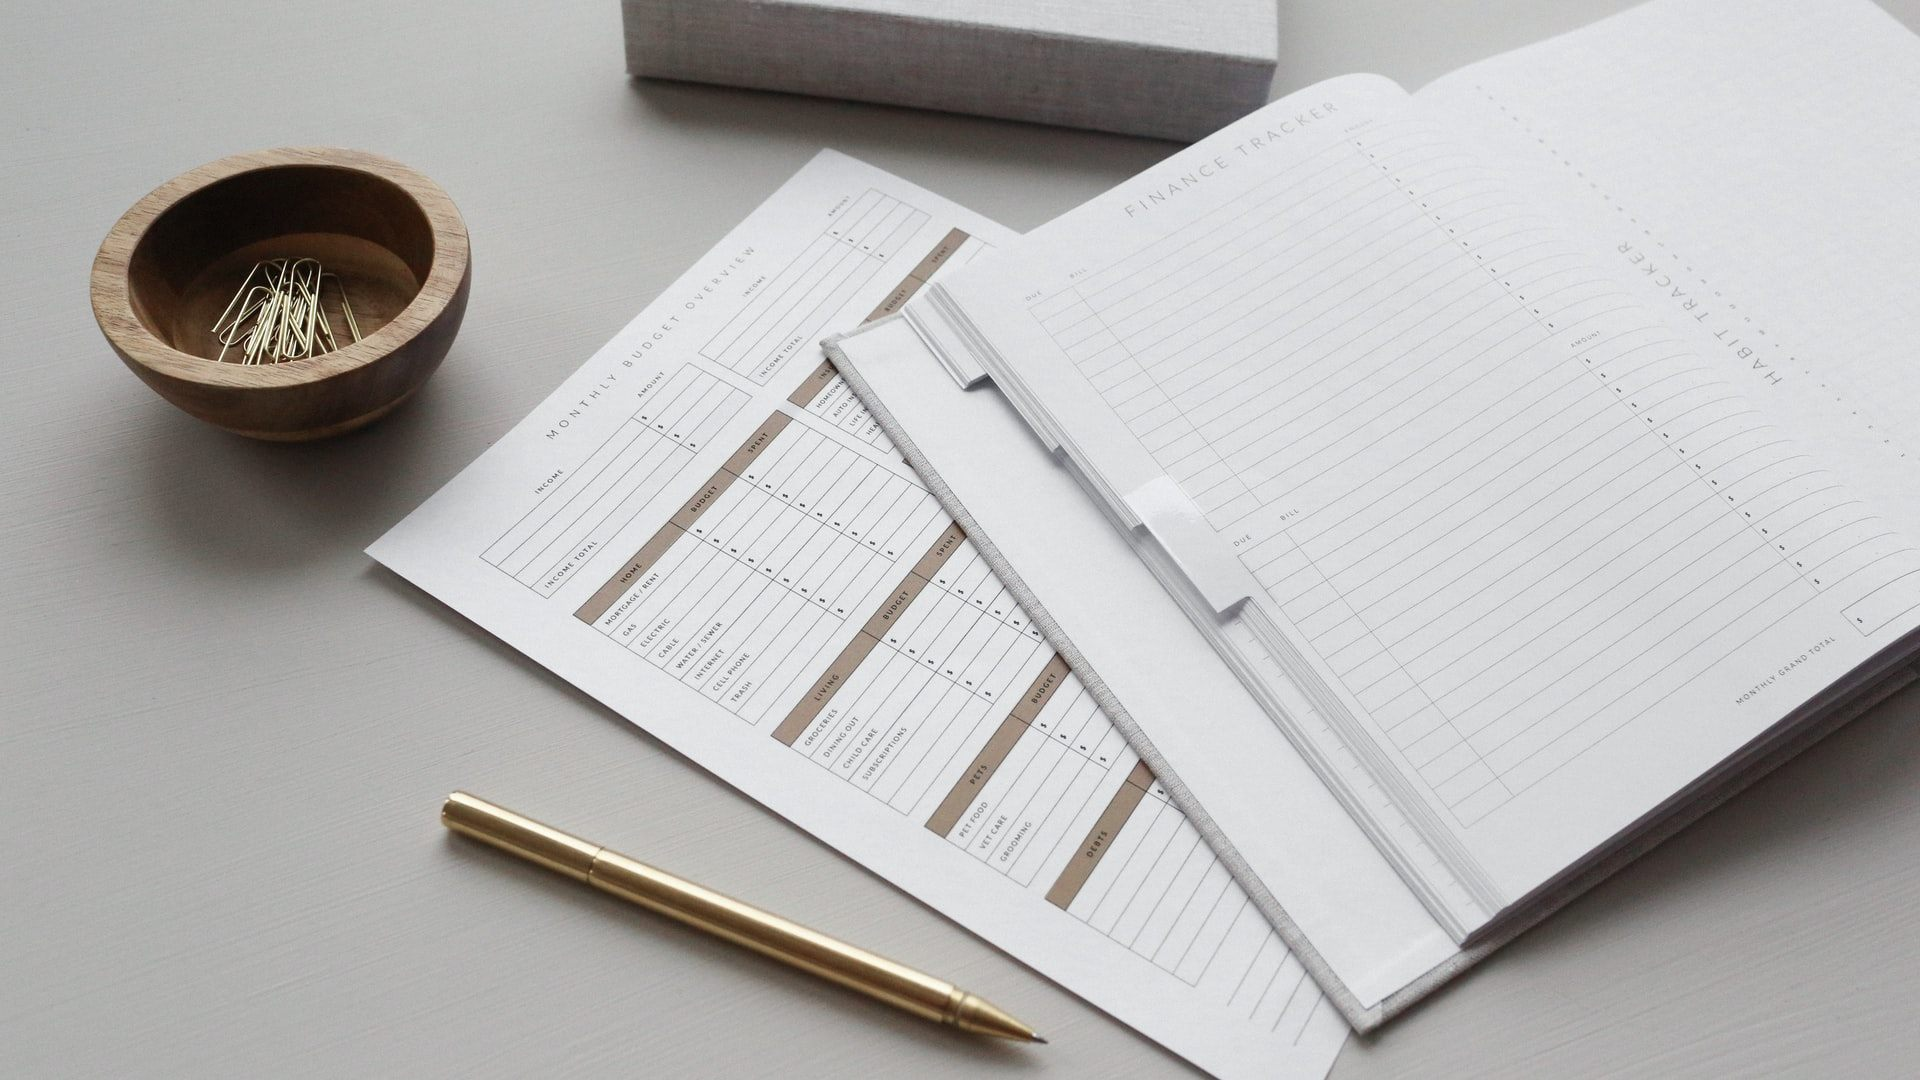 Spreadsheets or an App? What Is the Best Way to Control Personal Finance?